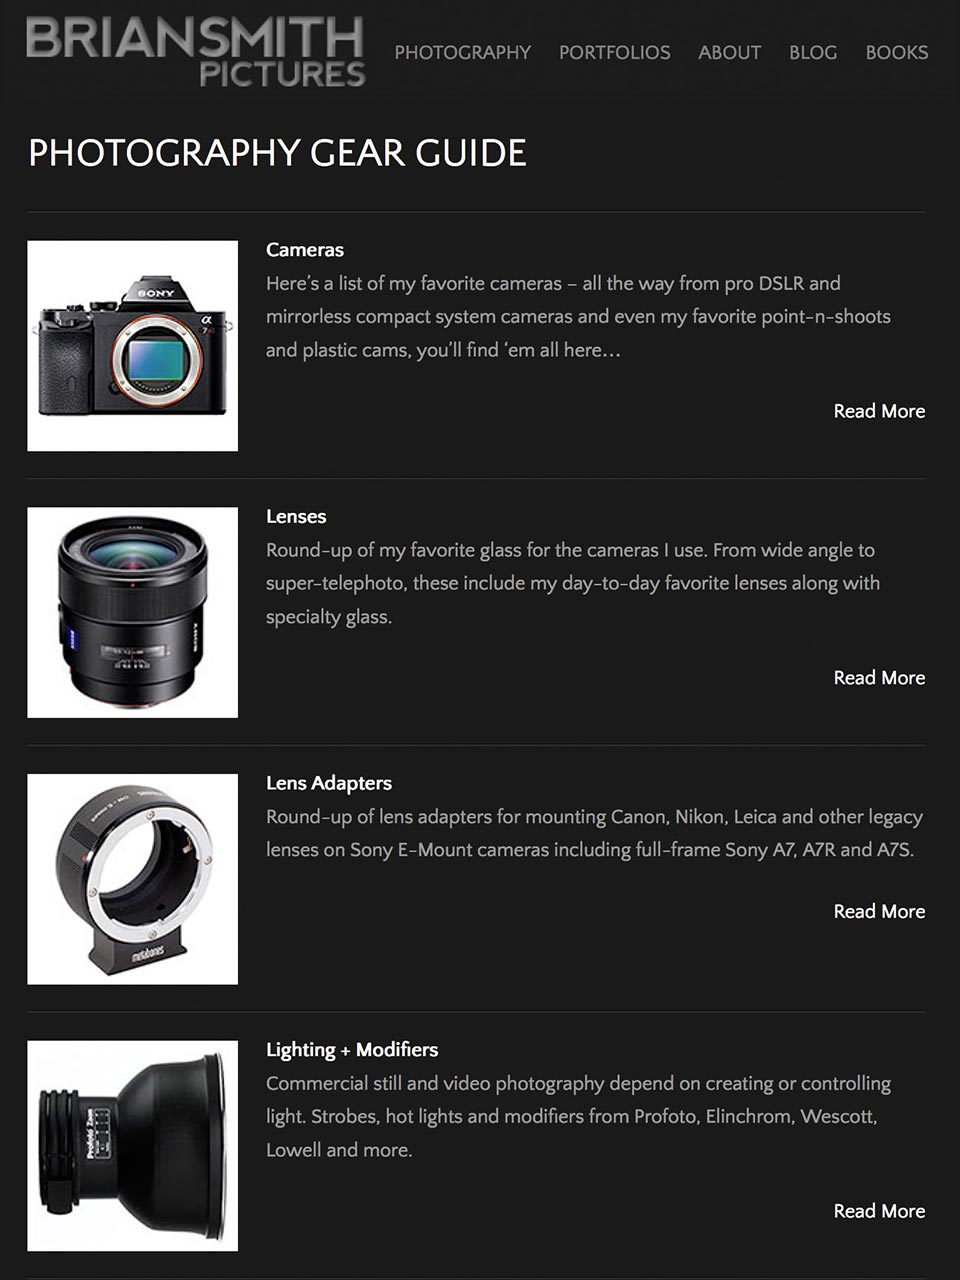 Brian-Smith-Pictures-Gear-Guide